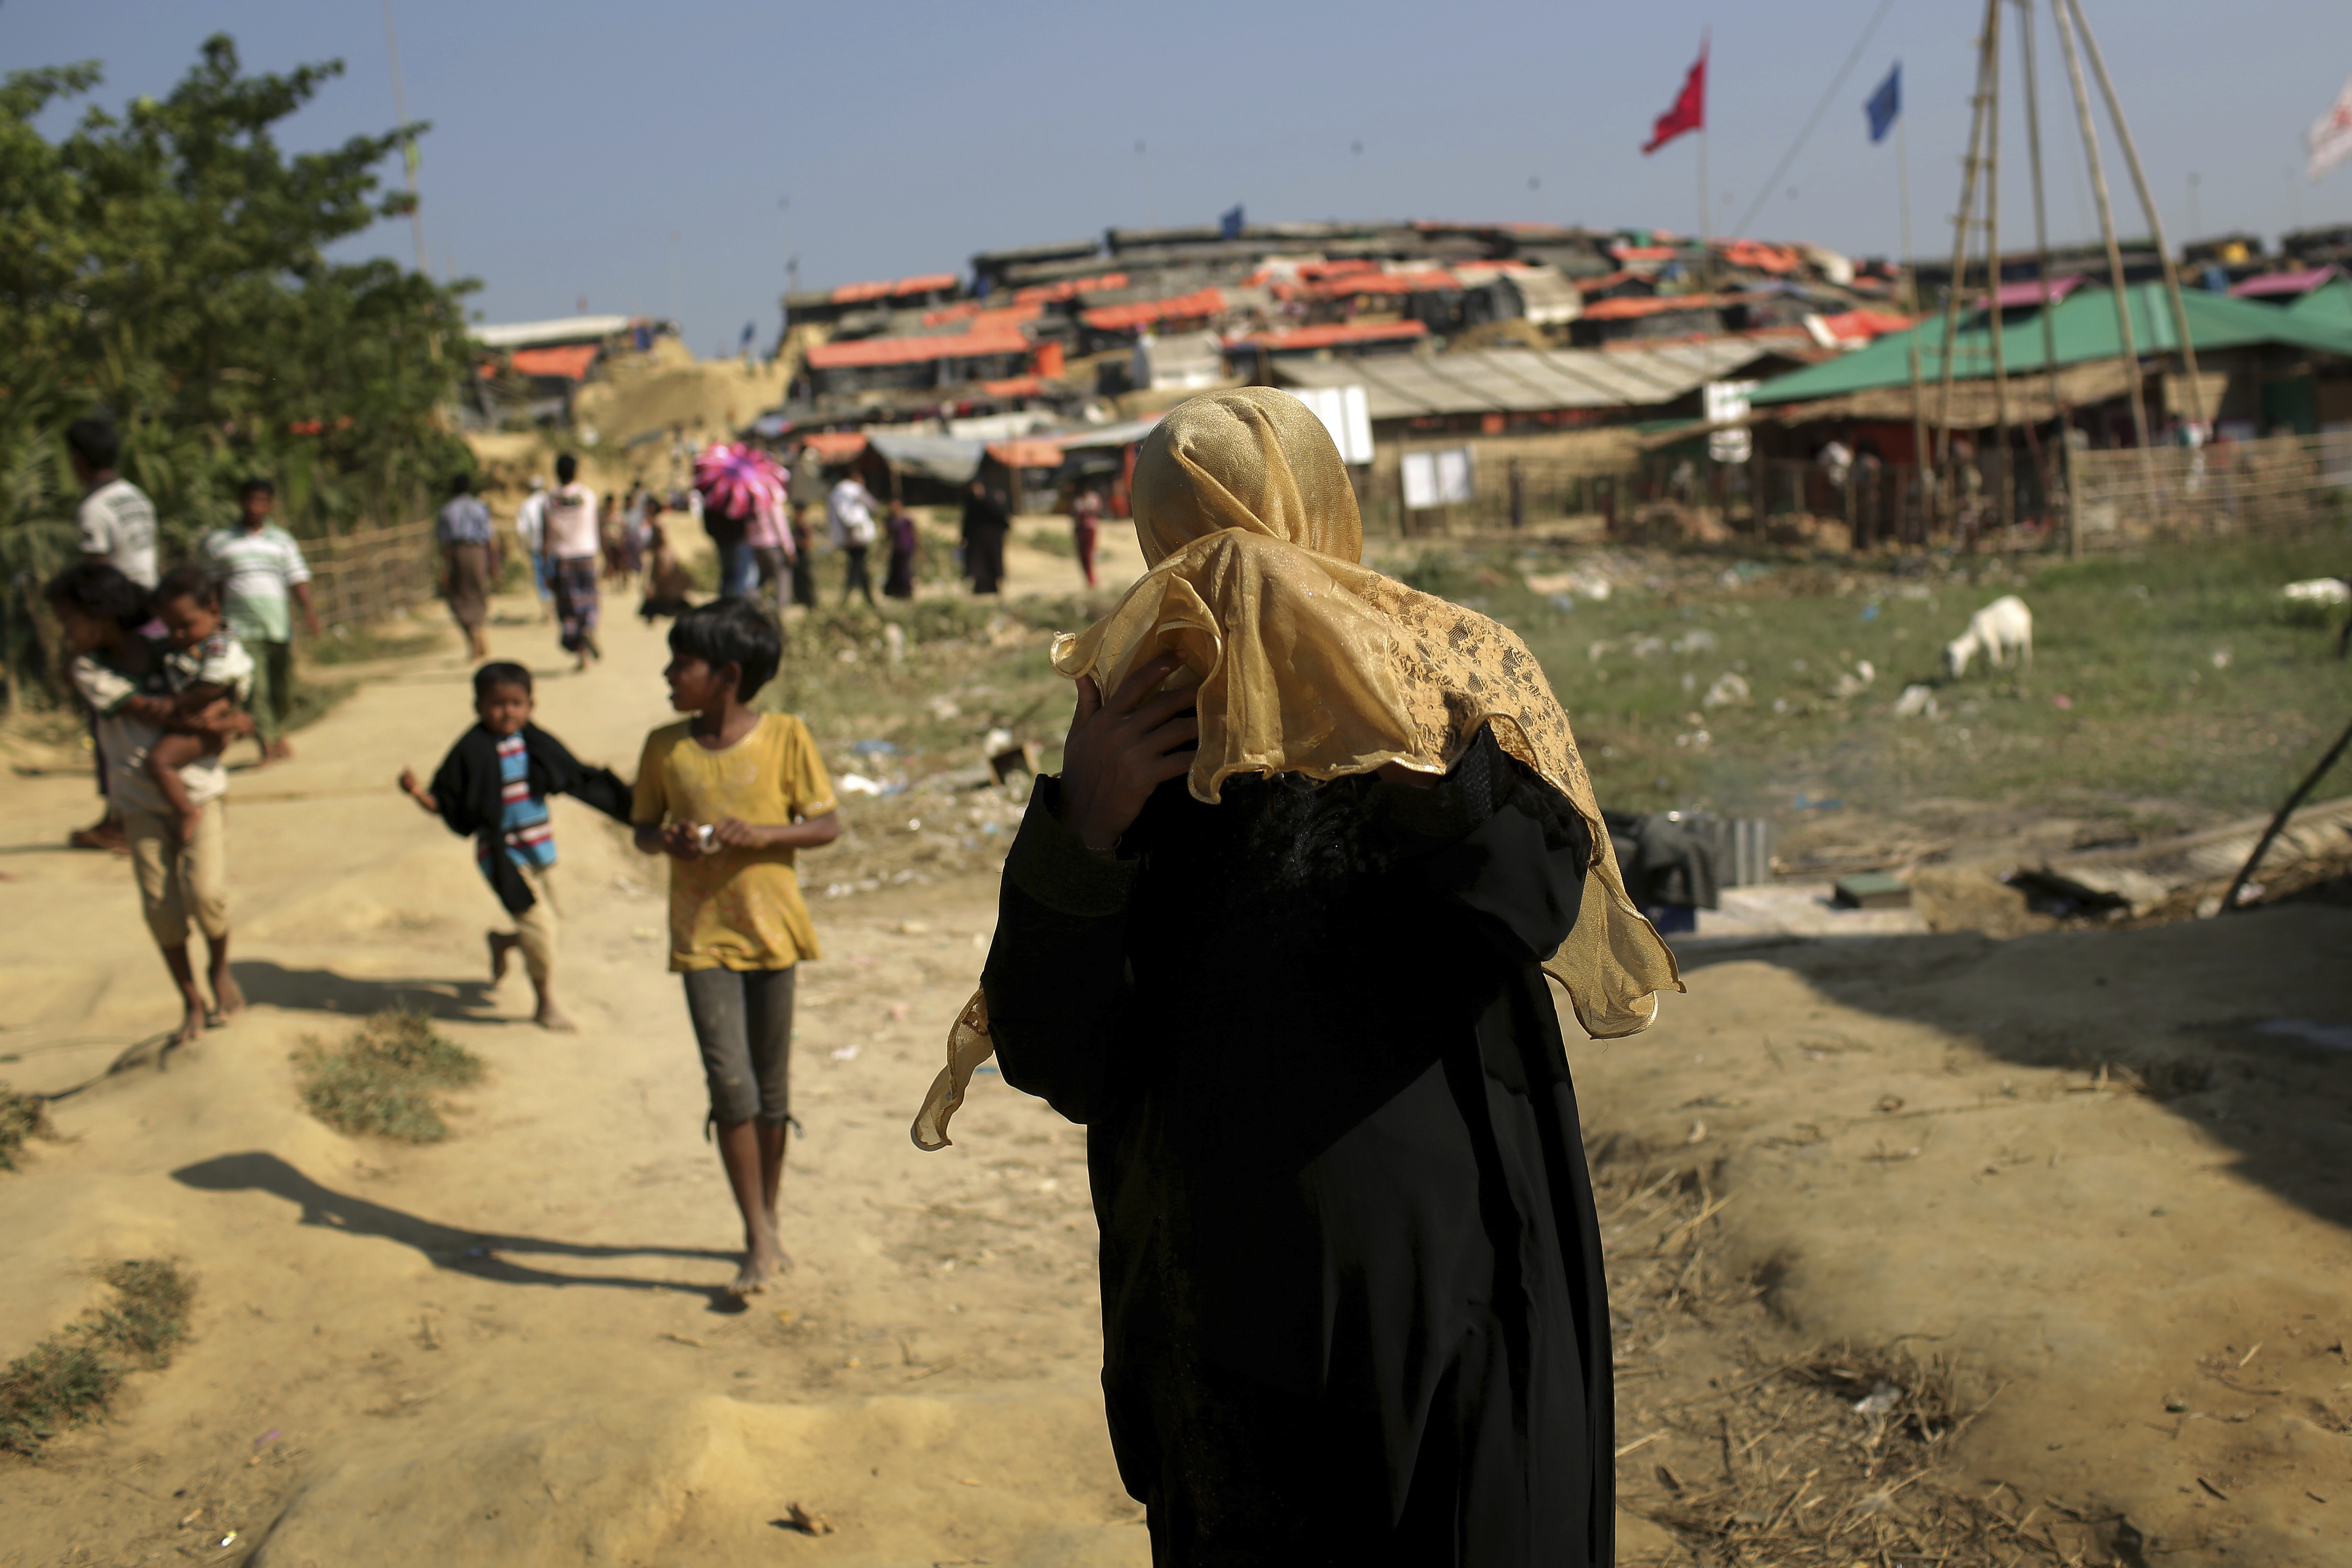 A Rohingya Muslim woman covers her face from the afternoon dust and heat as she walks through Jamtoli refugee camp, Nov. 27, 2017, in Bangladesh. Since late August, more than 630,000 Rohingya have fled Myanmar's Rakhine state into neighboring Banglad...